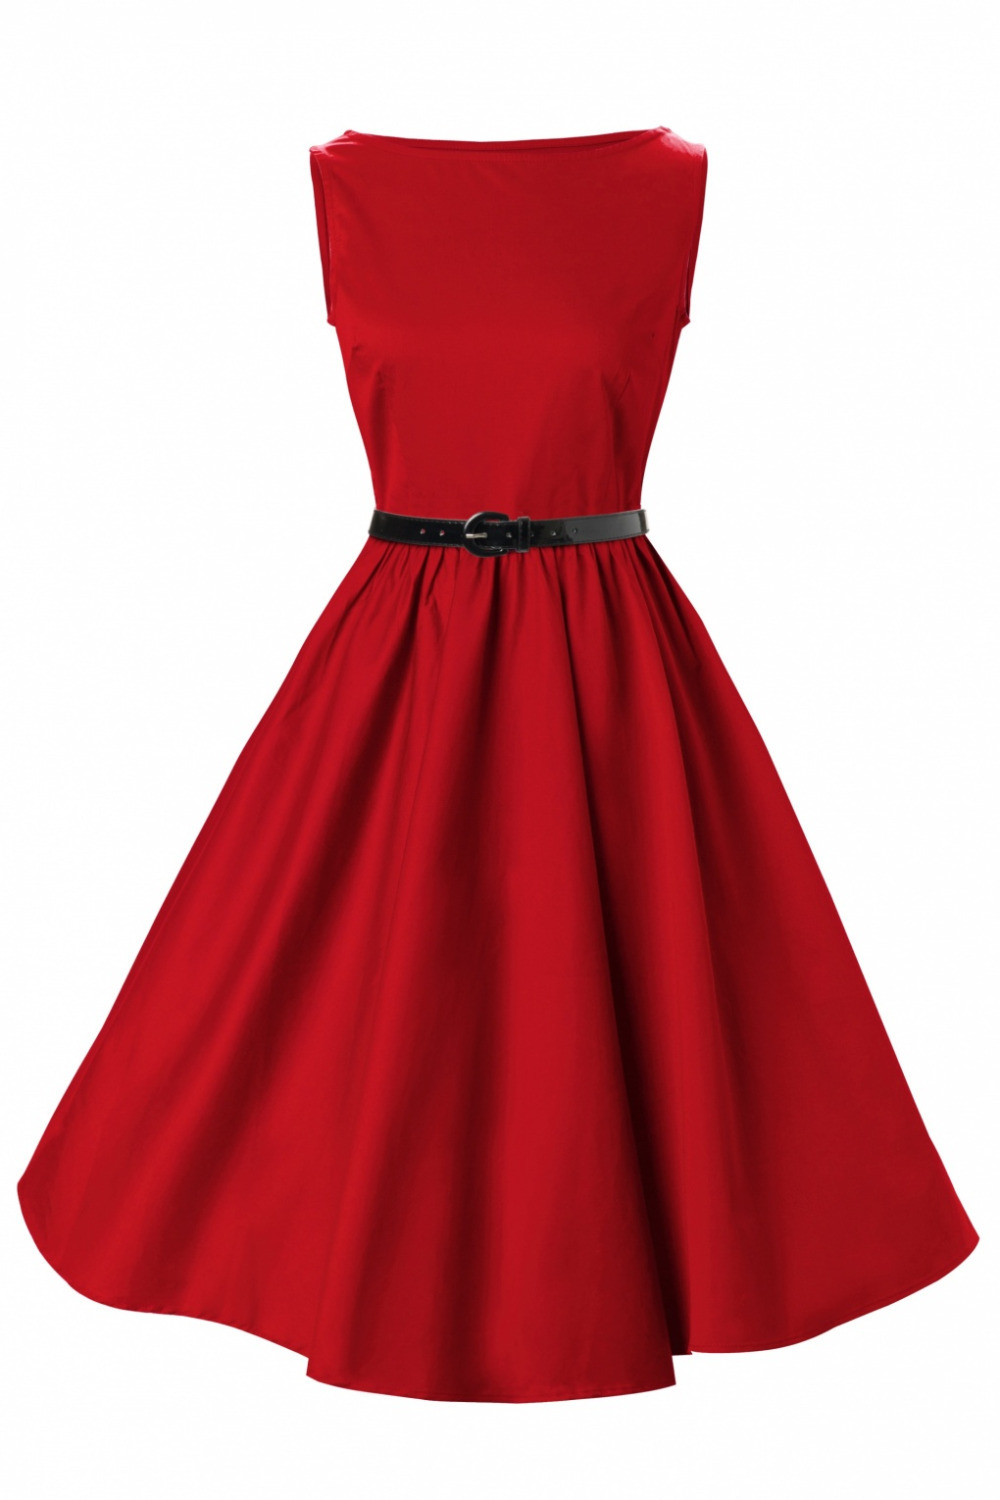 Awesome Details About Boohoo Womens Plus Anna Wrap Front Occasion Dress